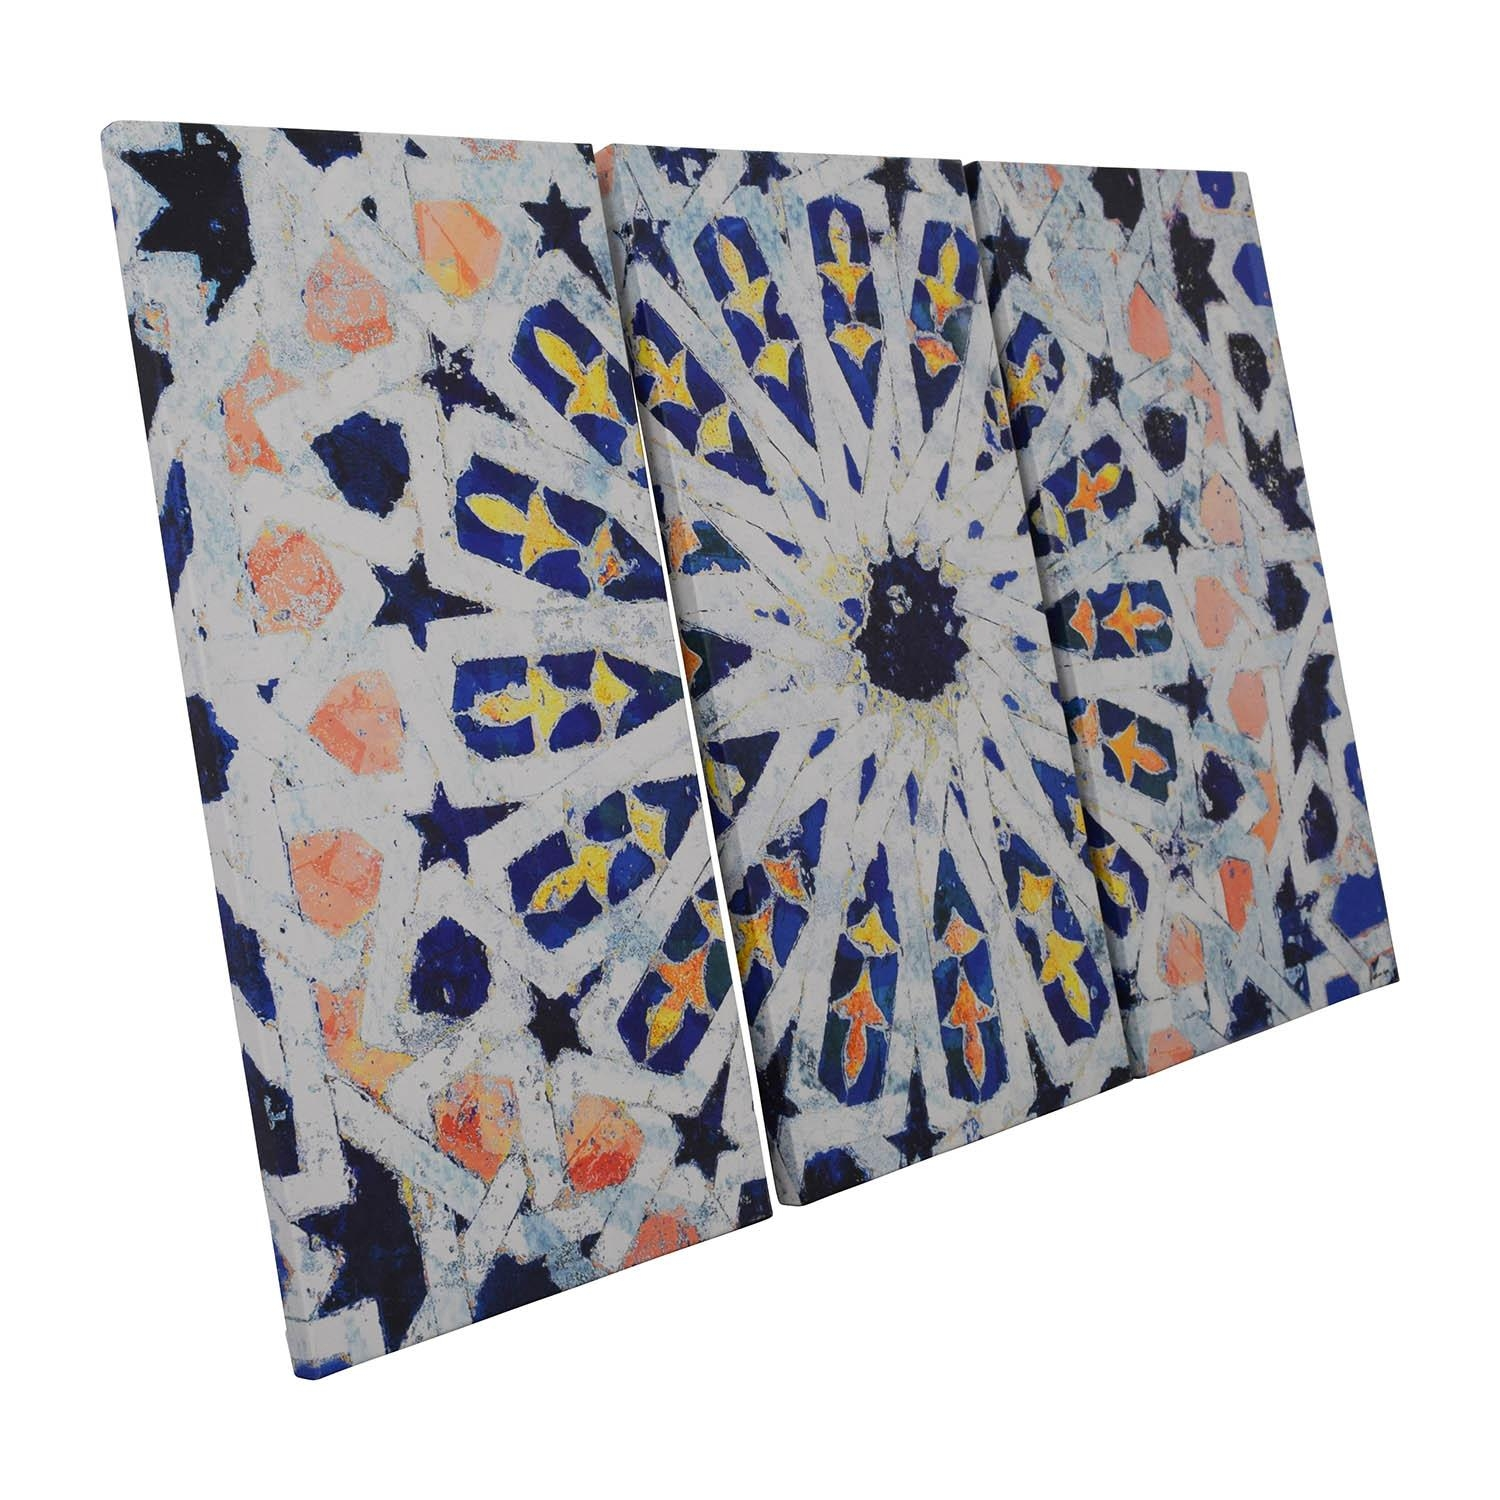 38% Off – Three Piece Kaleidoscope Wall Art / Decor Throughout Kaleidoscope Wall Art (Image 6 of 20)